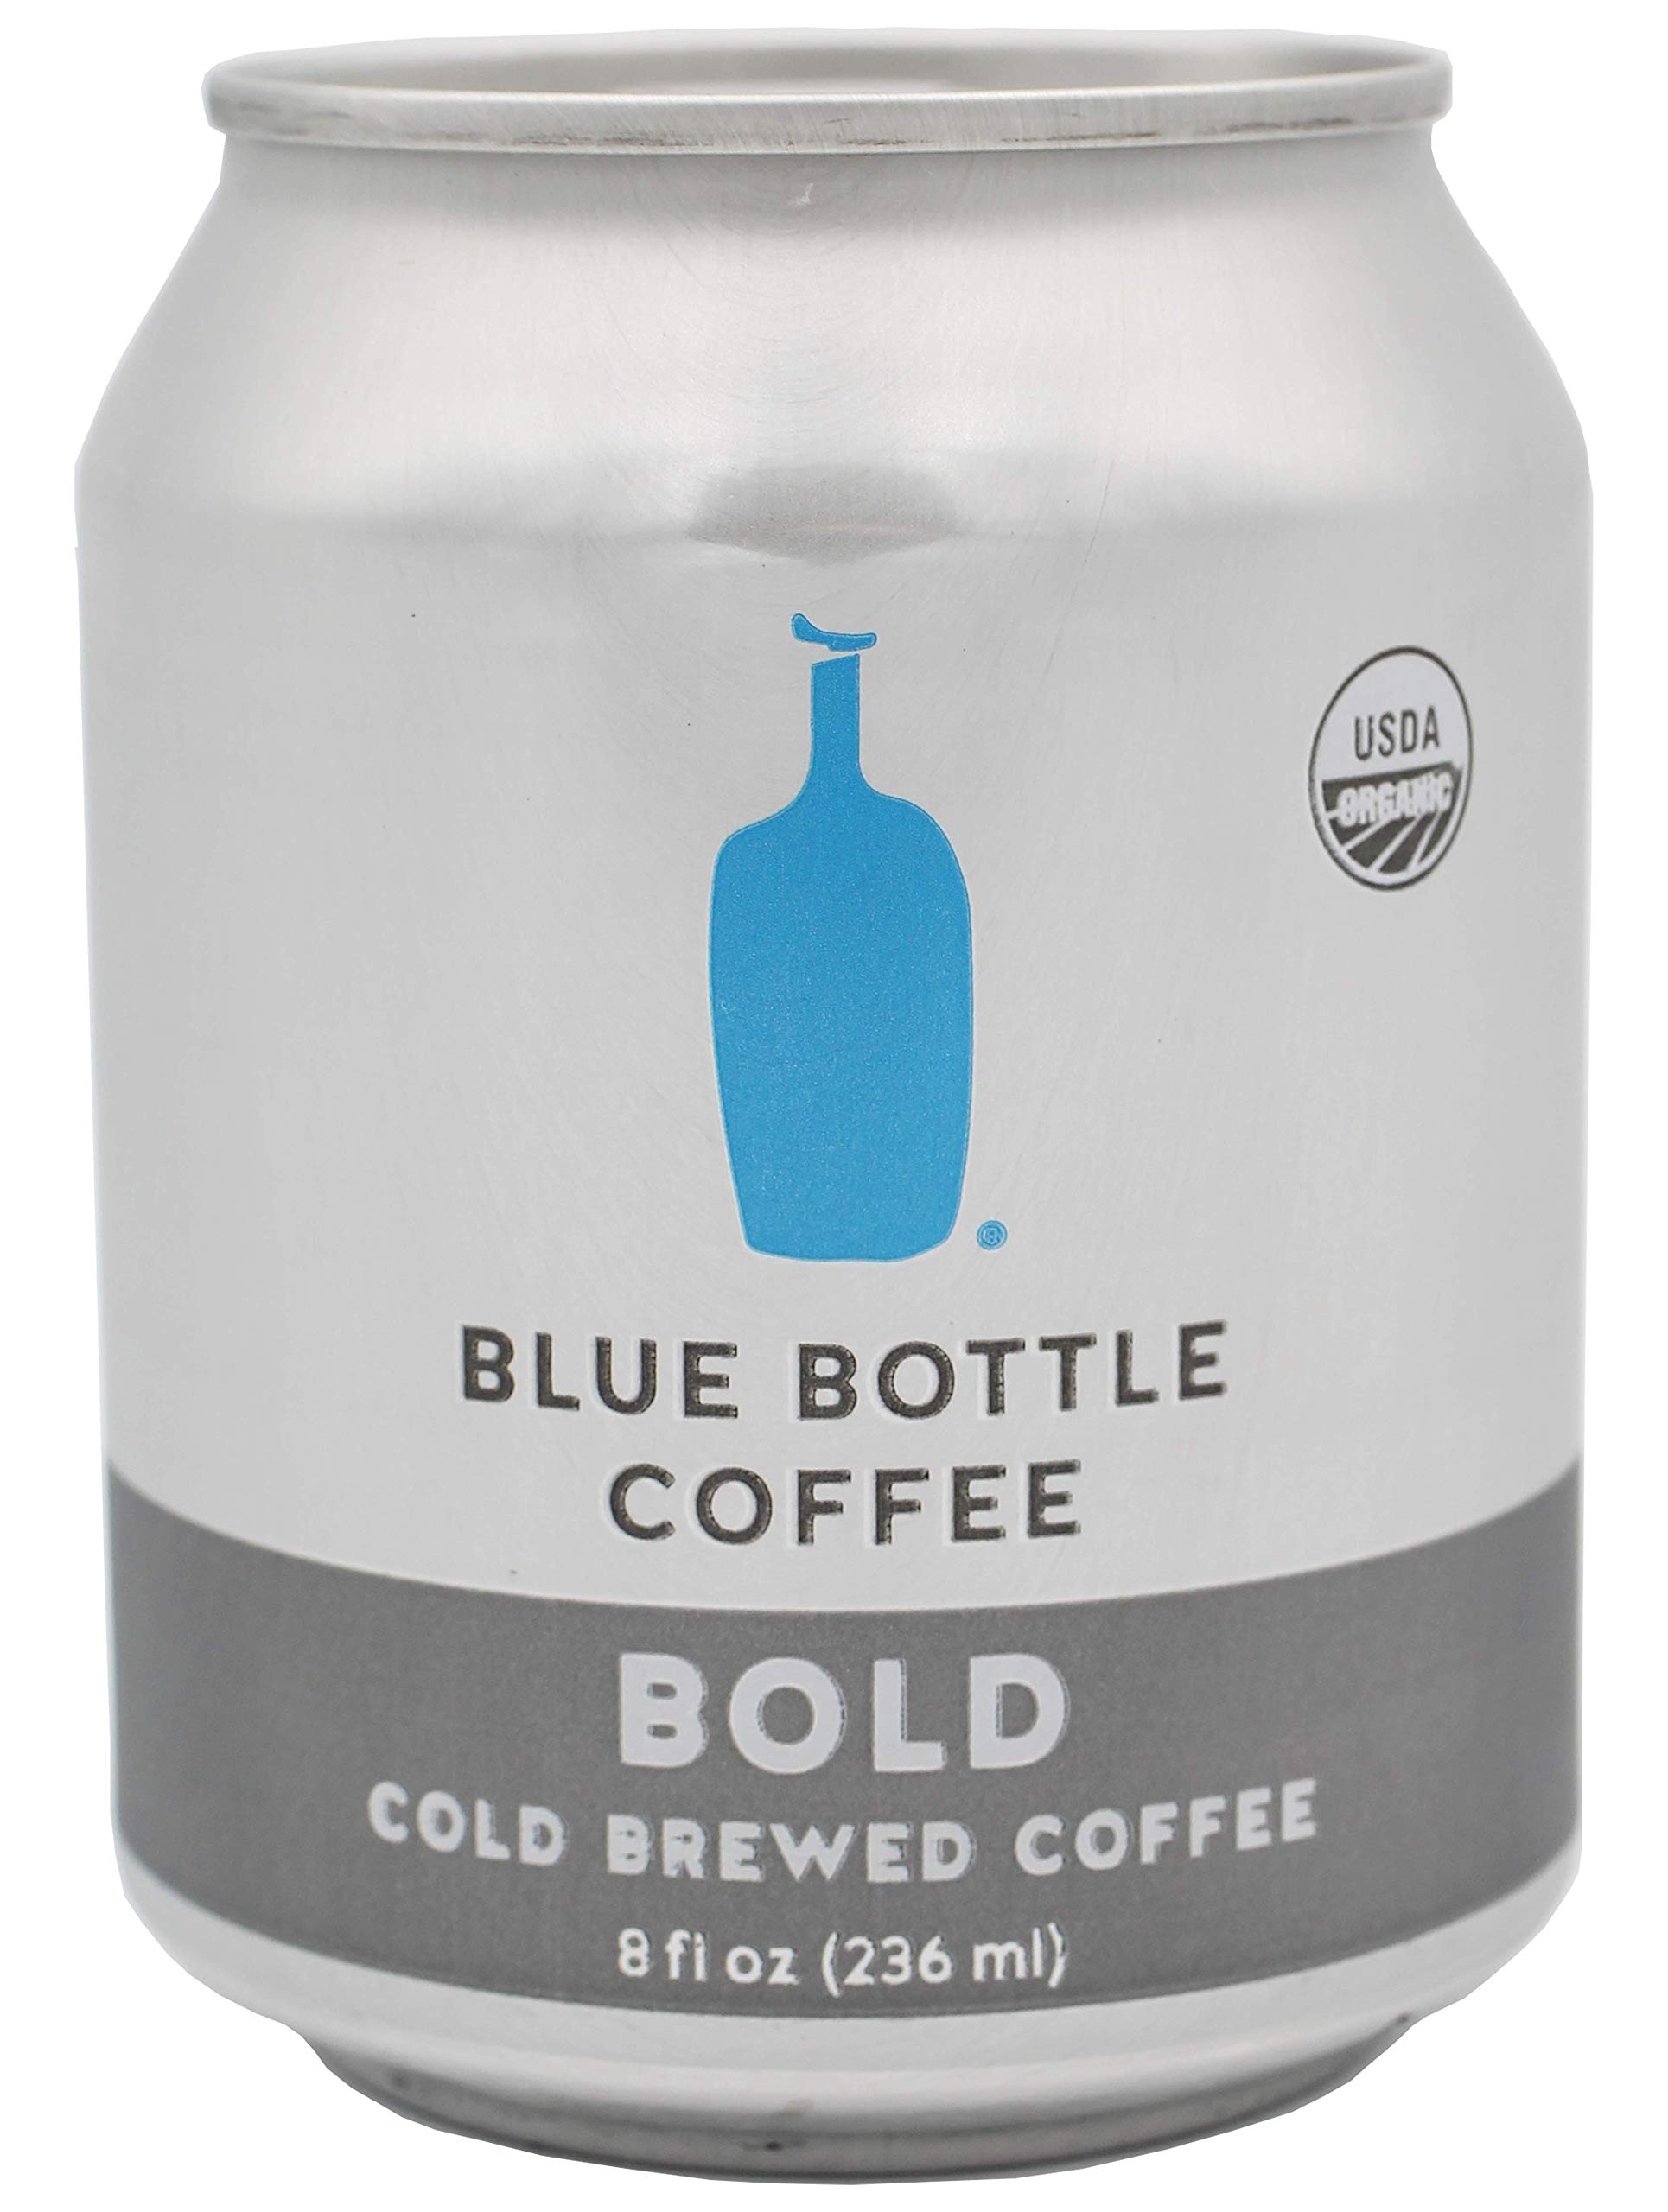 Blue Bottle Coffee| BOLD | Cold Brewed Coffee, 8 oz | pack of 6|